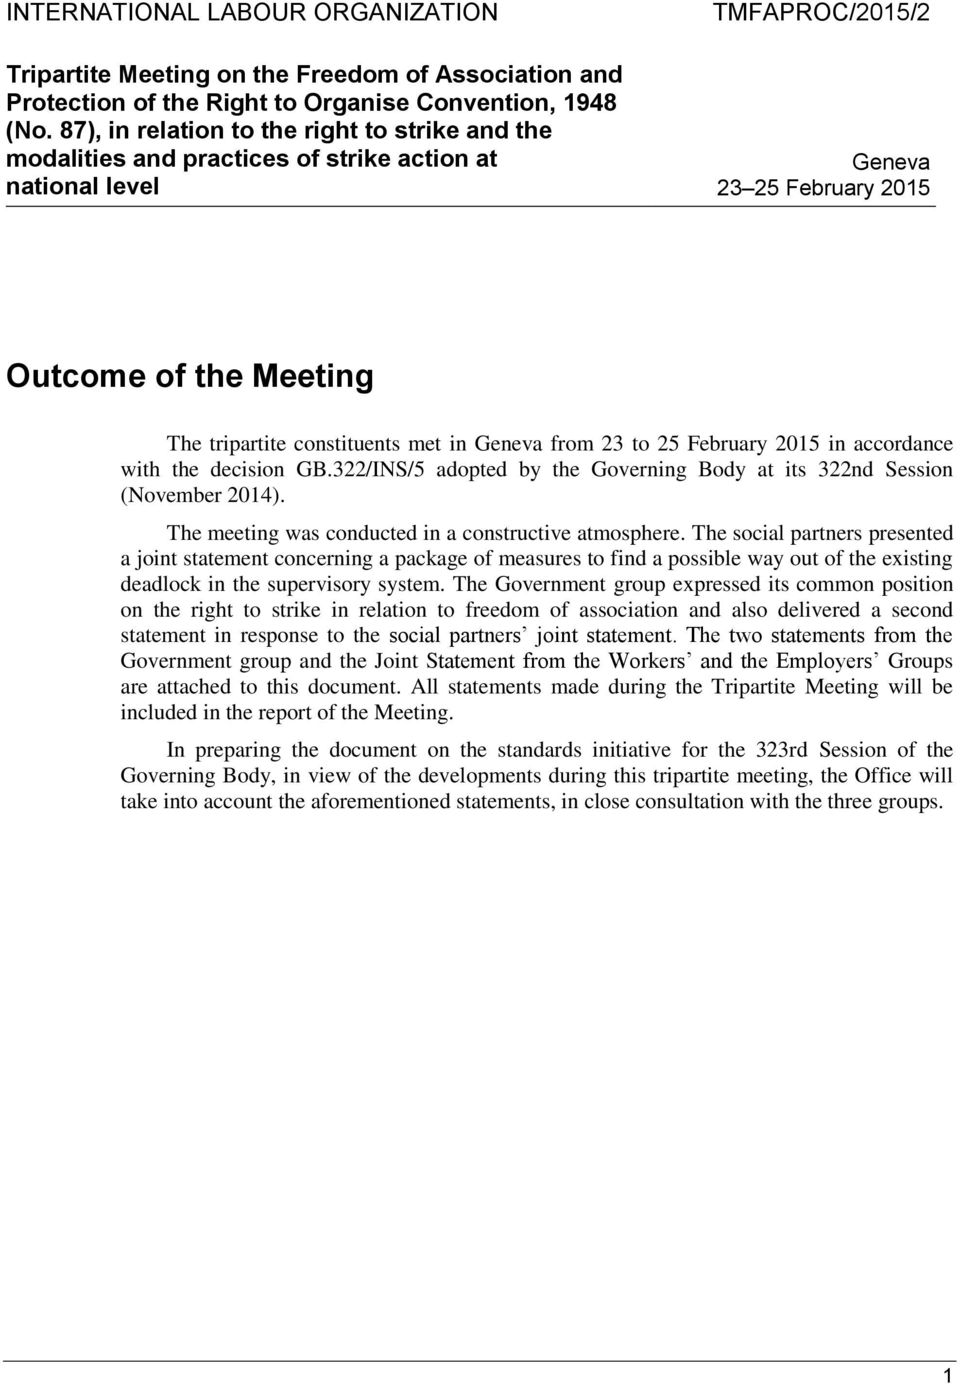 constituents met in Geneva from 23 to 25 February 2015 in accordance with the decision GB.322/INS/5 adopted by the Governing Body at its 322nd Session (November 2014).